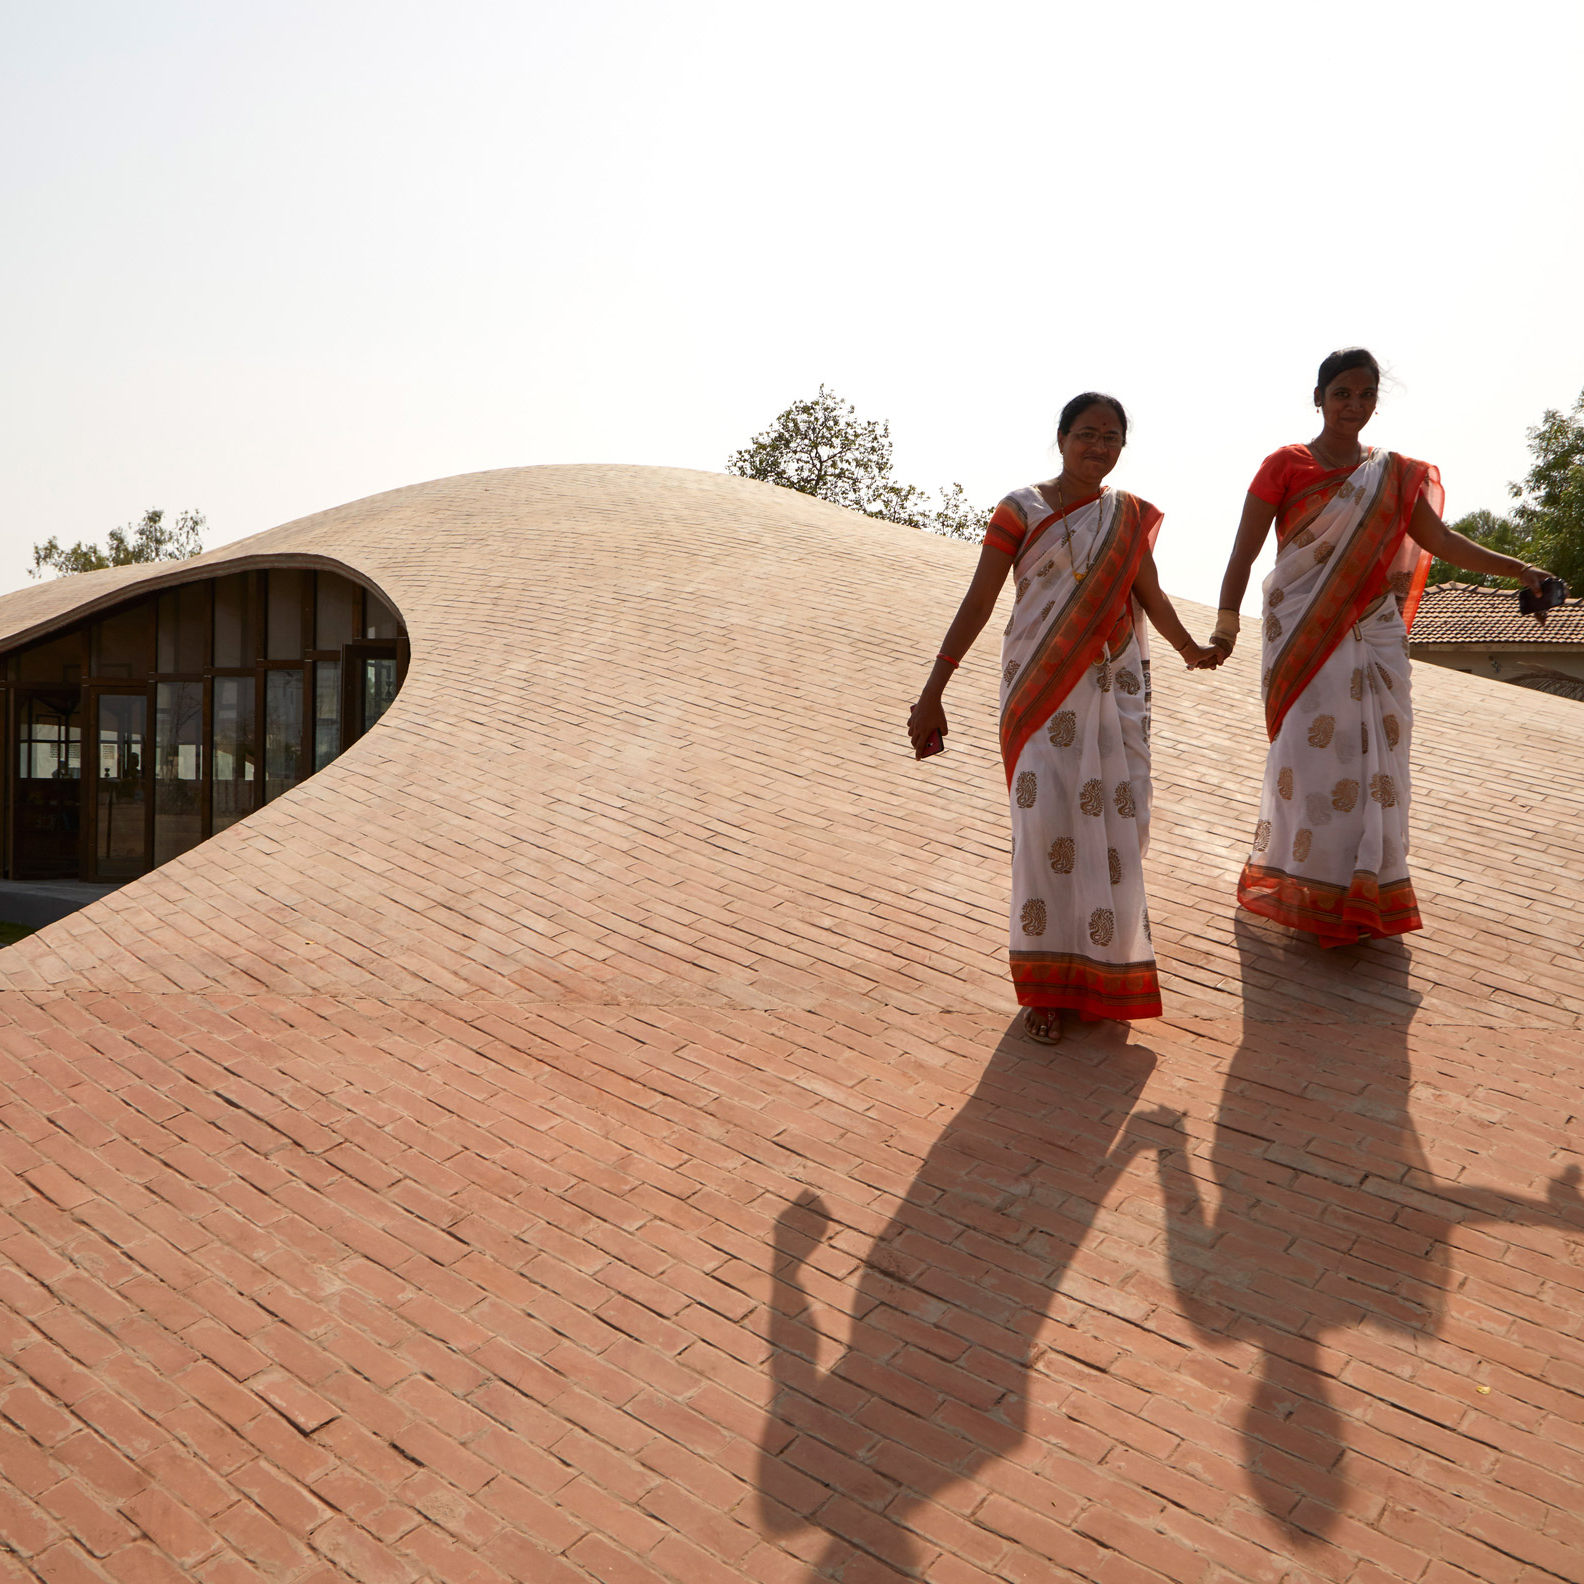 Sameep Padora creates undulating brick roof to cover school library in India